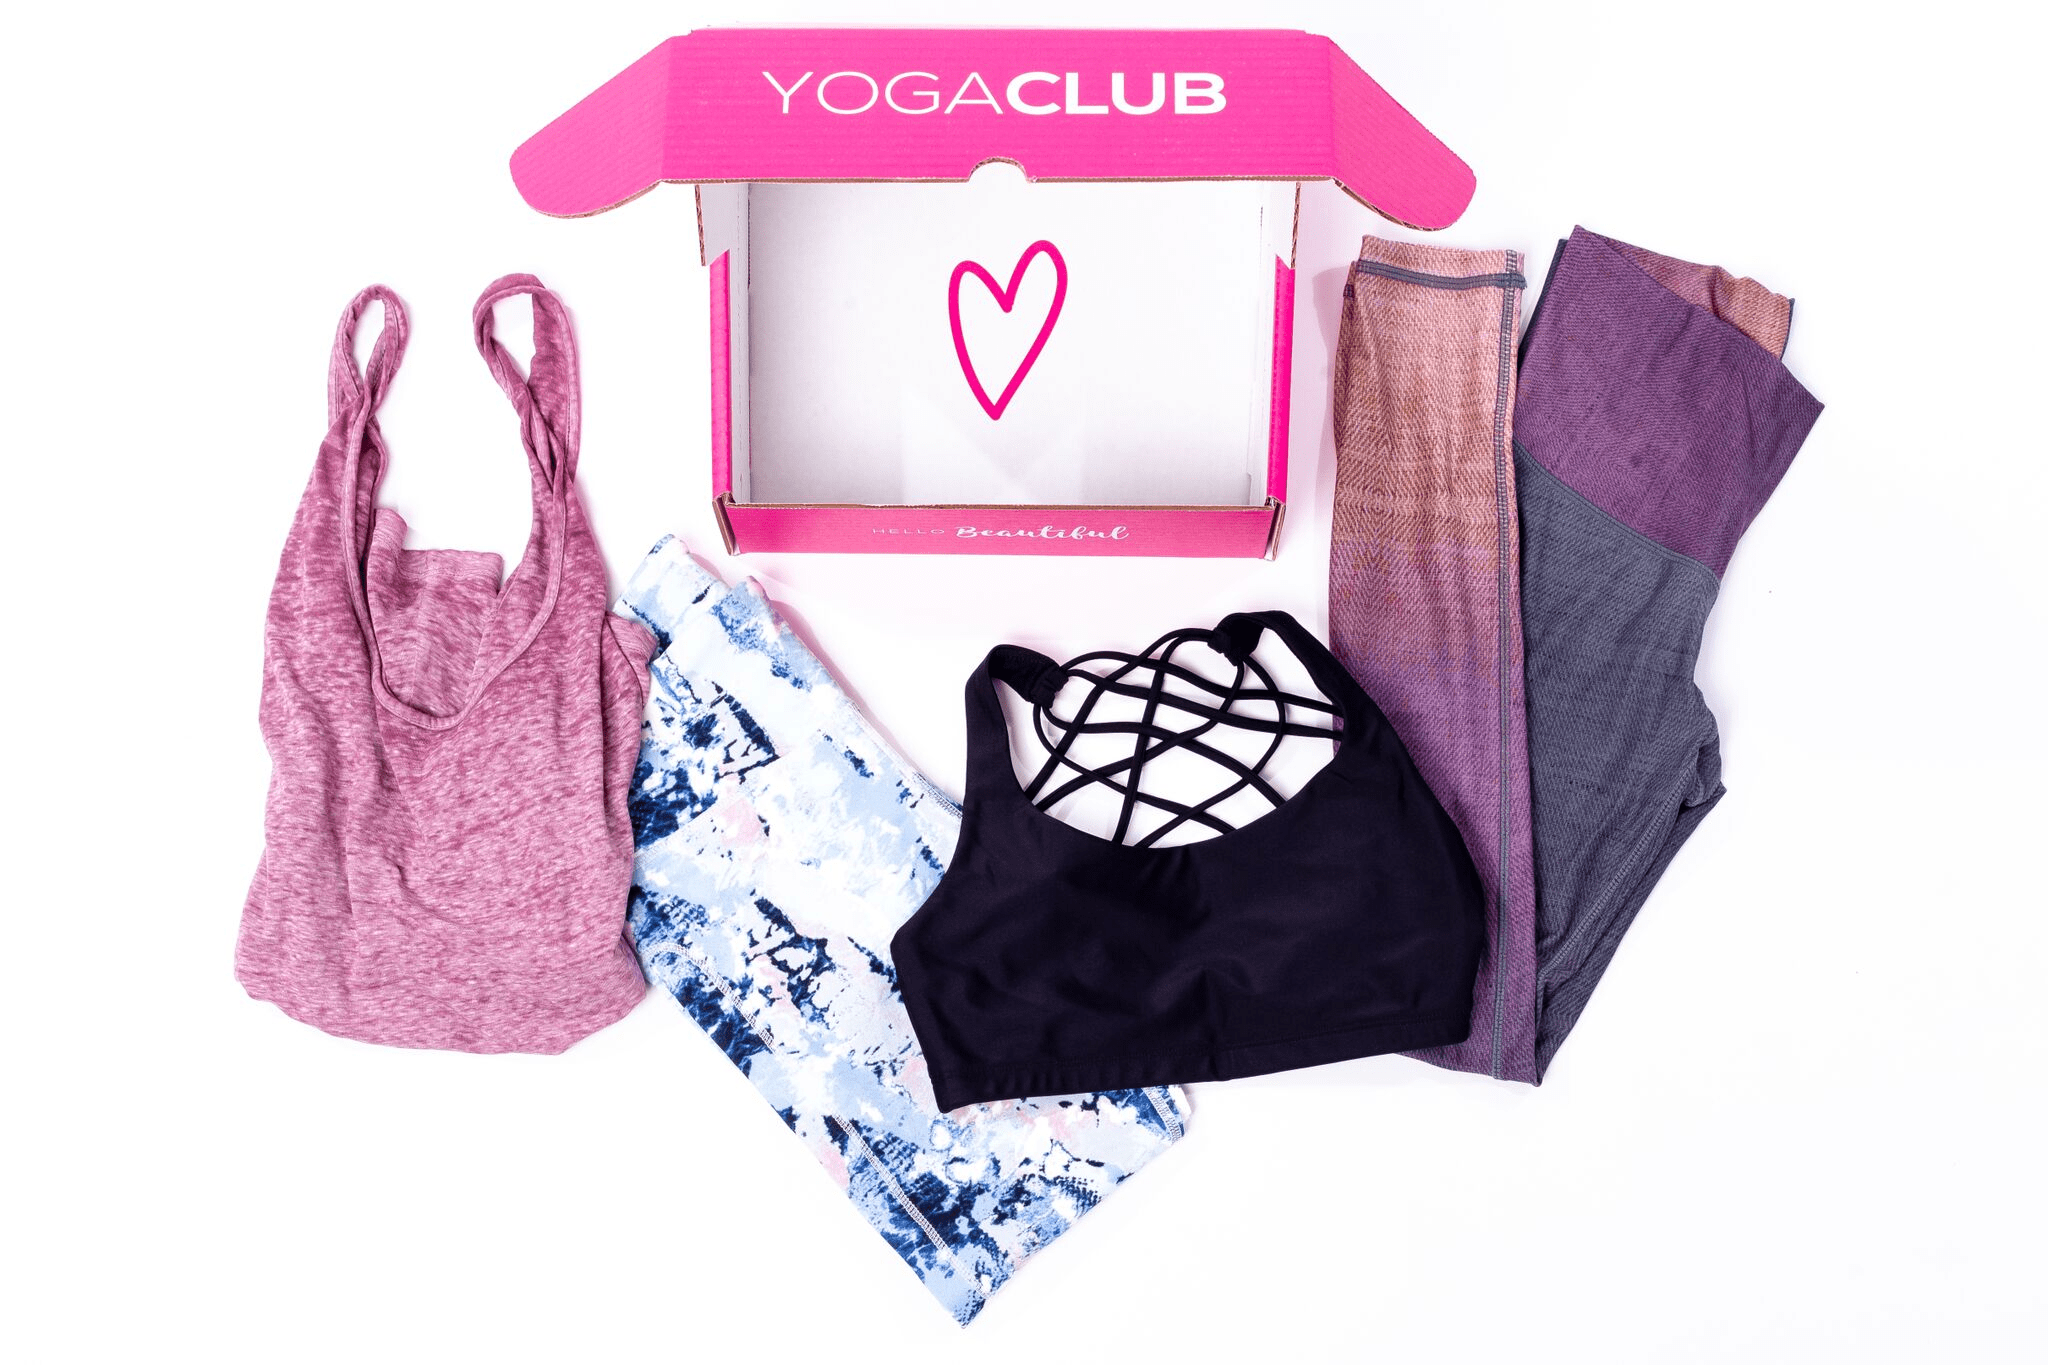 YogaClub Coupon: Pay Only $59 Per Month For Life!